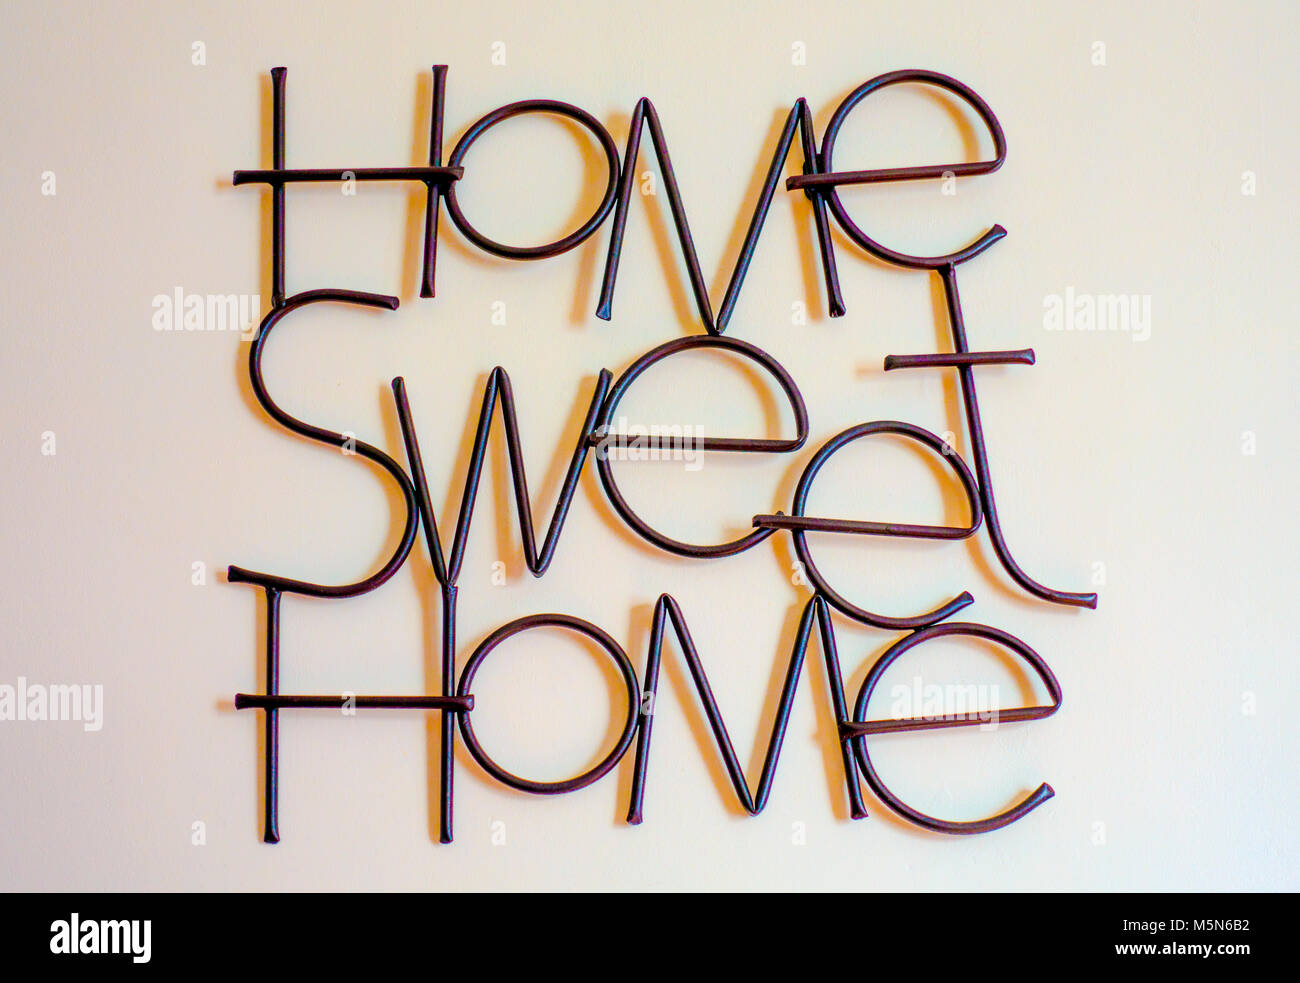 """The familiar motto """"Home Sweet Home"""", formed from metal lettering and affixed to an interior home wall. England, - Stock Image"""